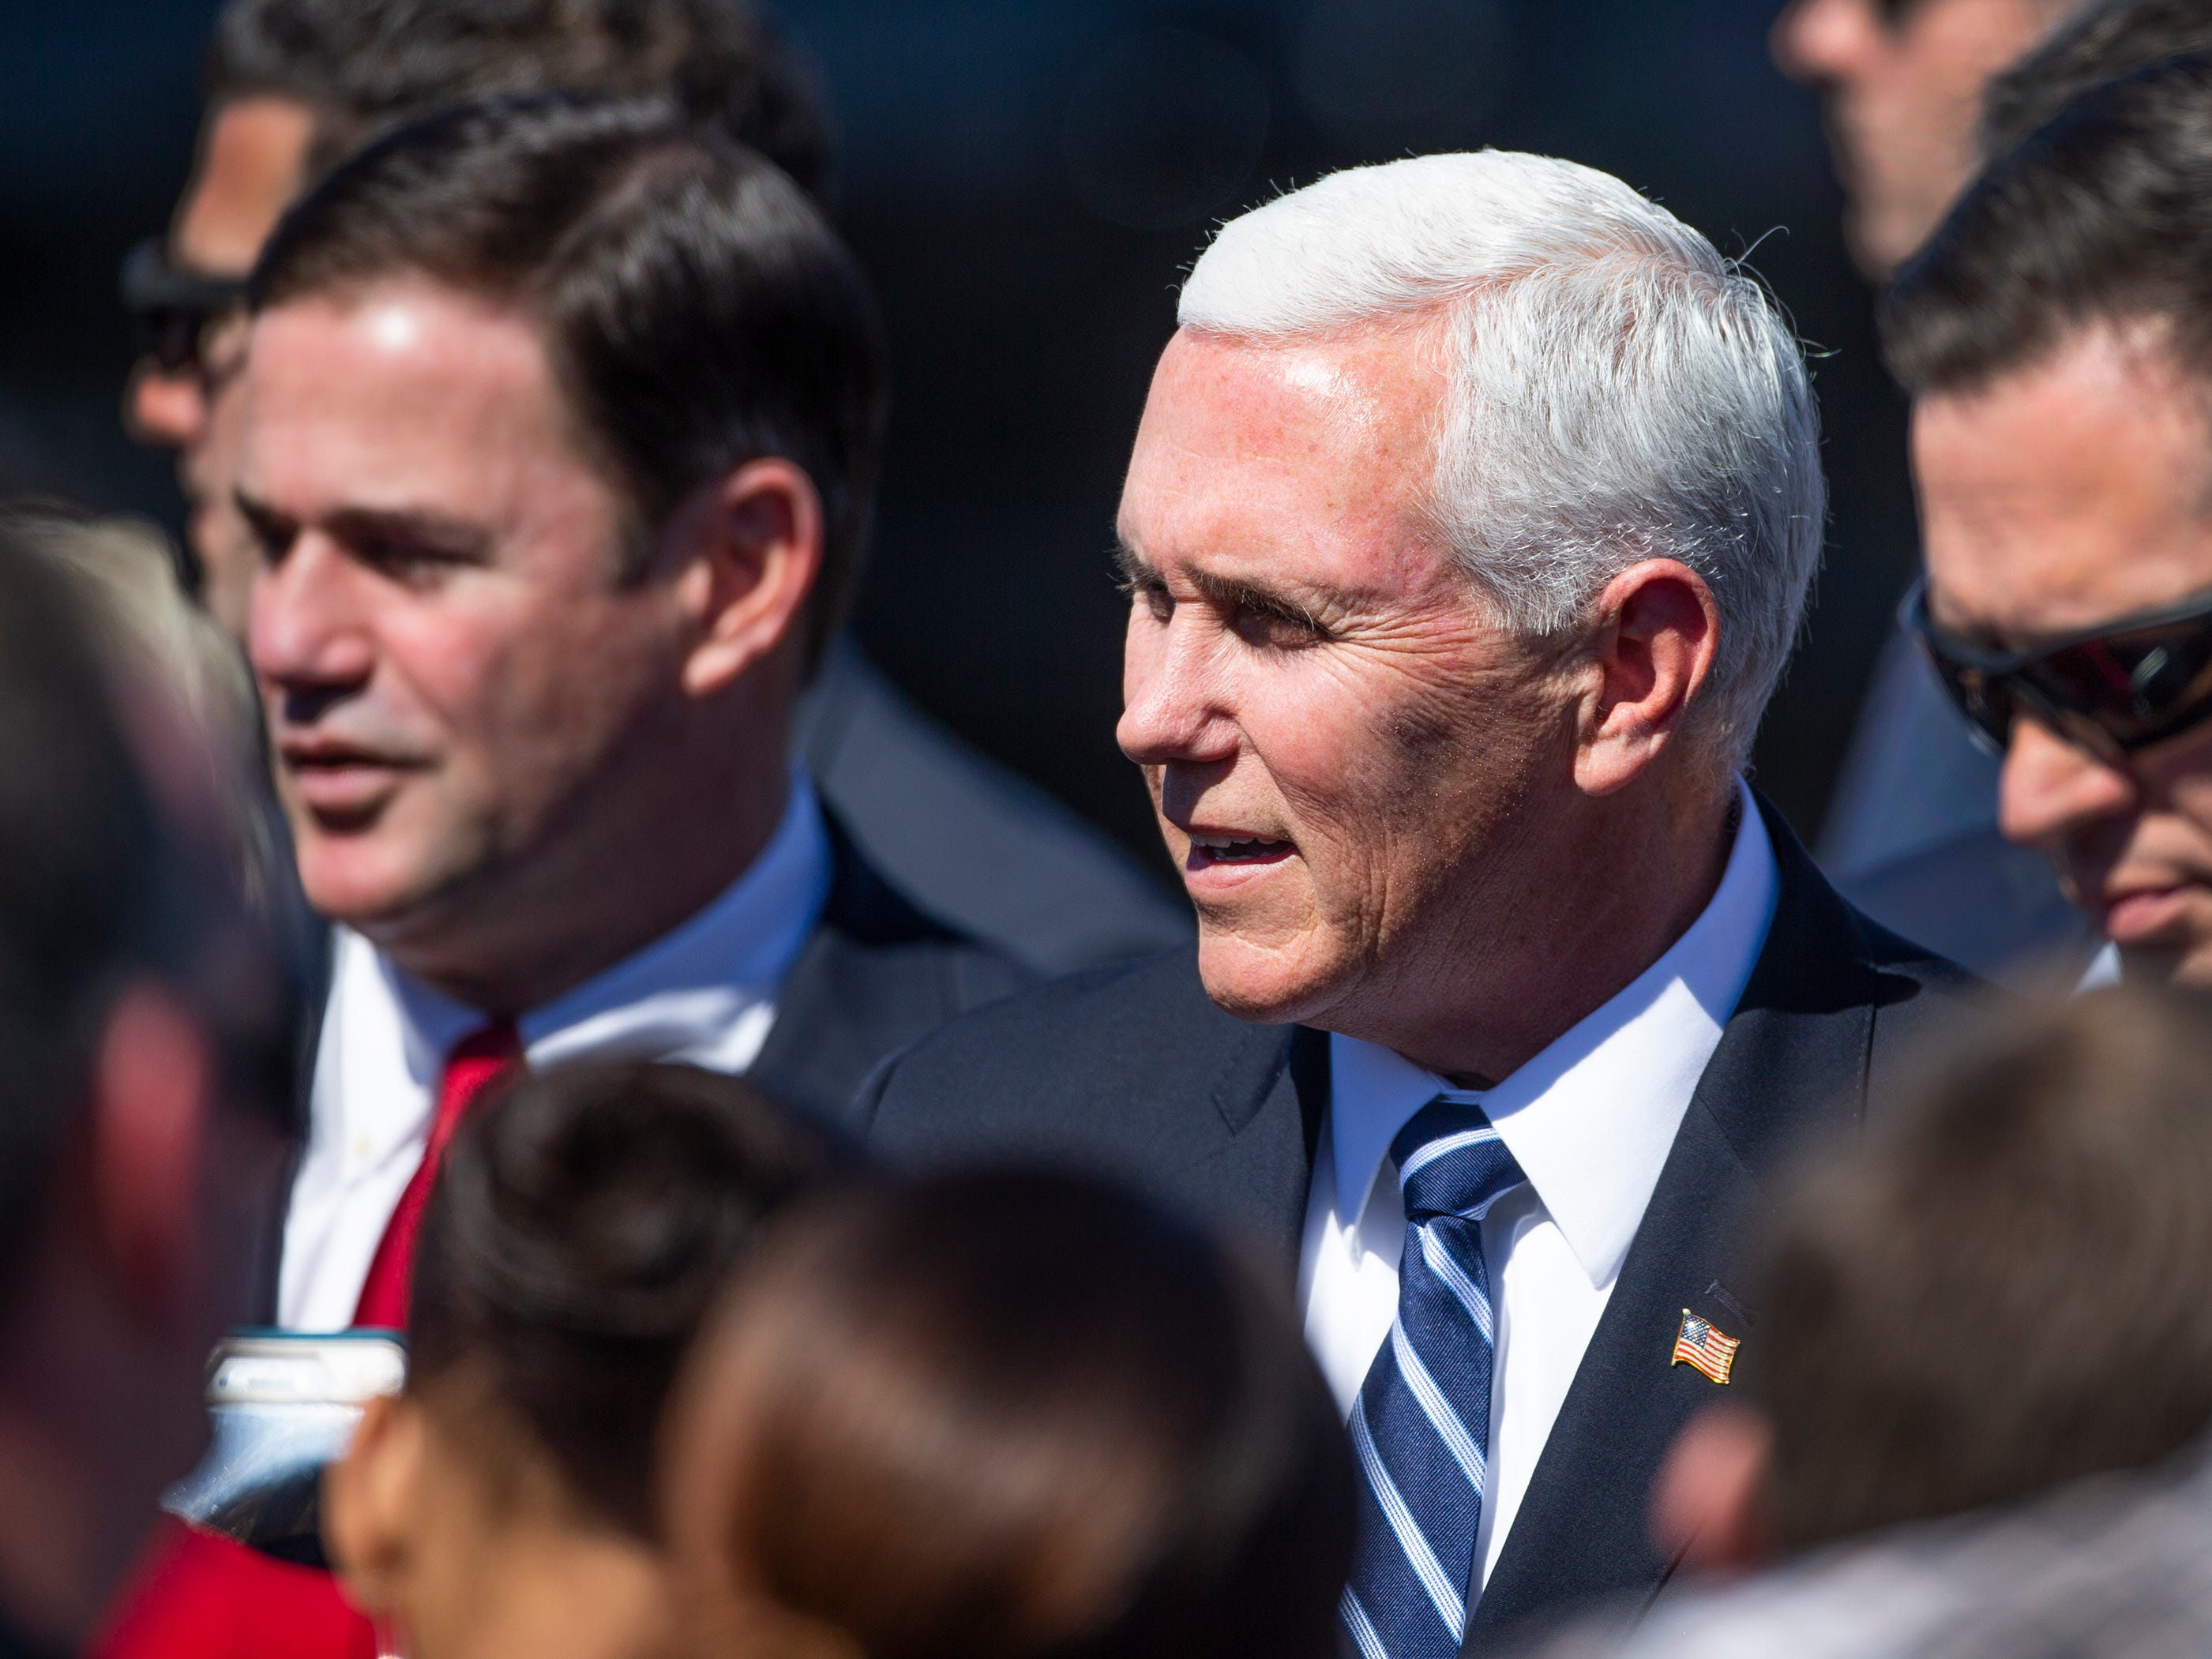 Vice President Mike Pence and Arizona Gov. Doug Ducey greet a small crowd after arriving on Air Force Two at Sky Harbor International Airport in Phoenix on March 5, 2019.